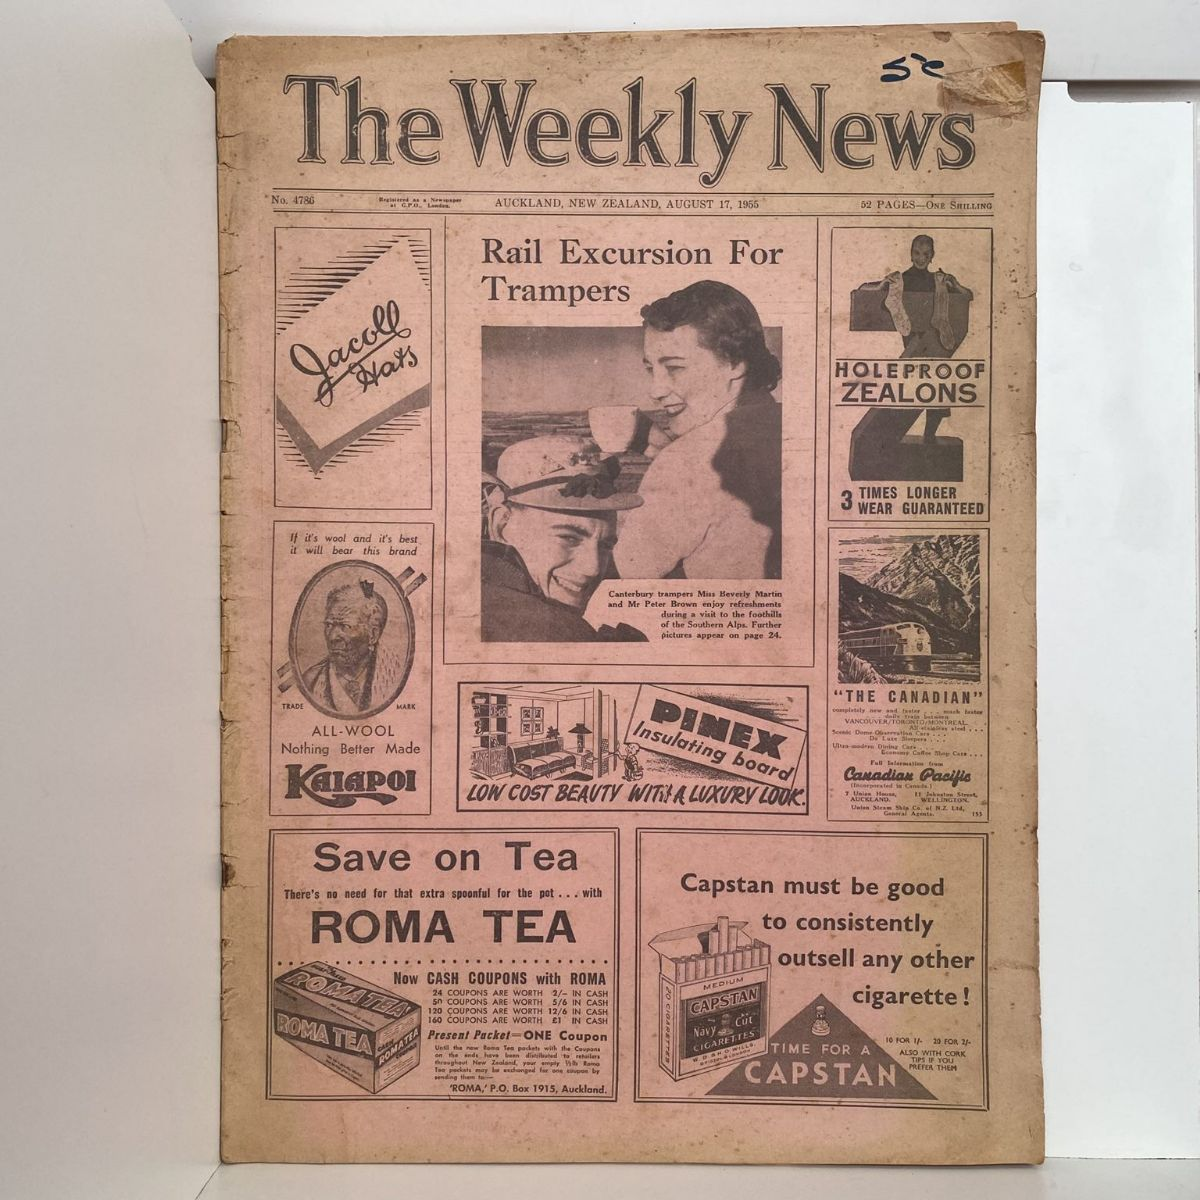 The Weekly News - 17 August 1955